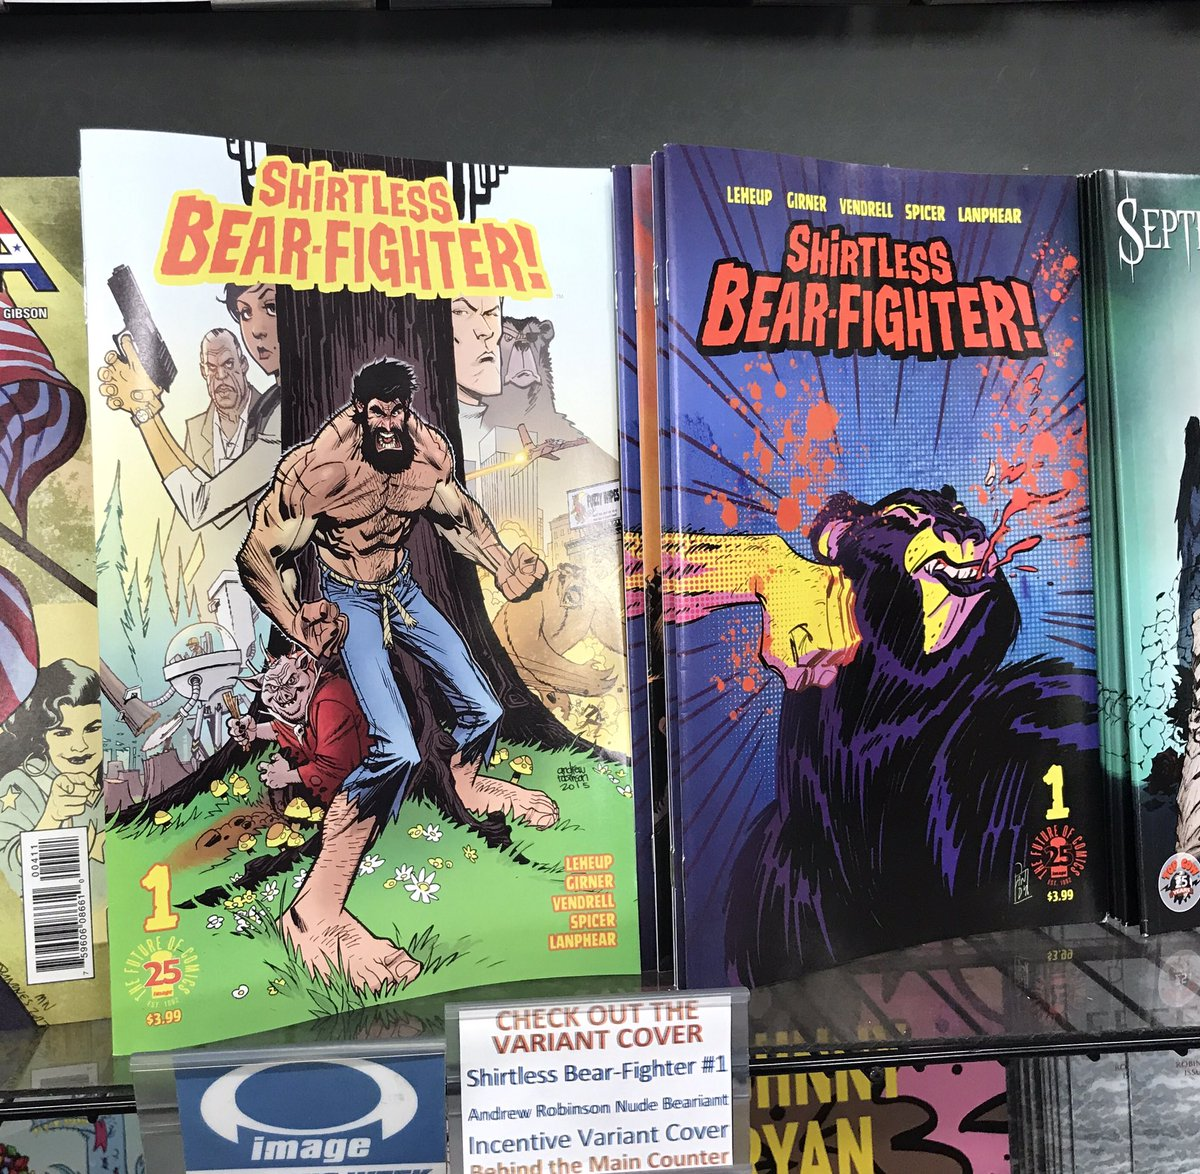 SHIRTLESS BEAR-FIGHTER #1 is a delight! Congratulations to @JodyLeHeup and @SGirner! #WarOnBearror